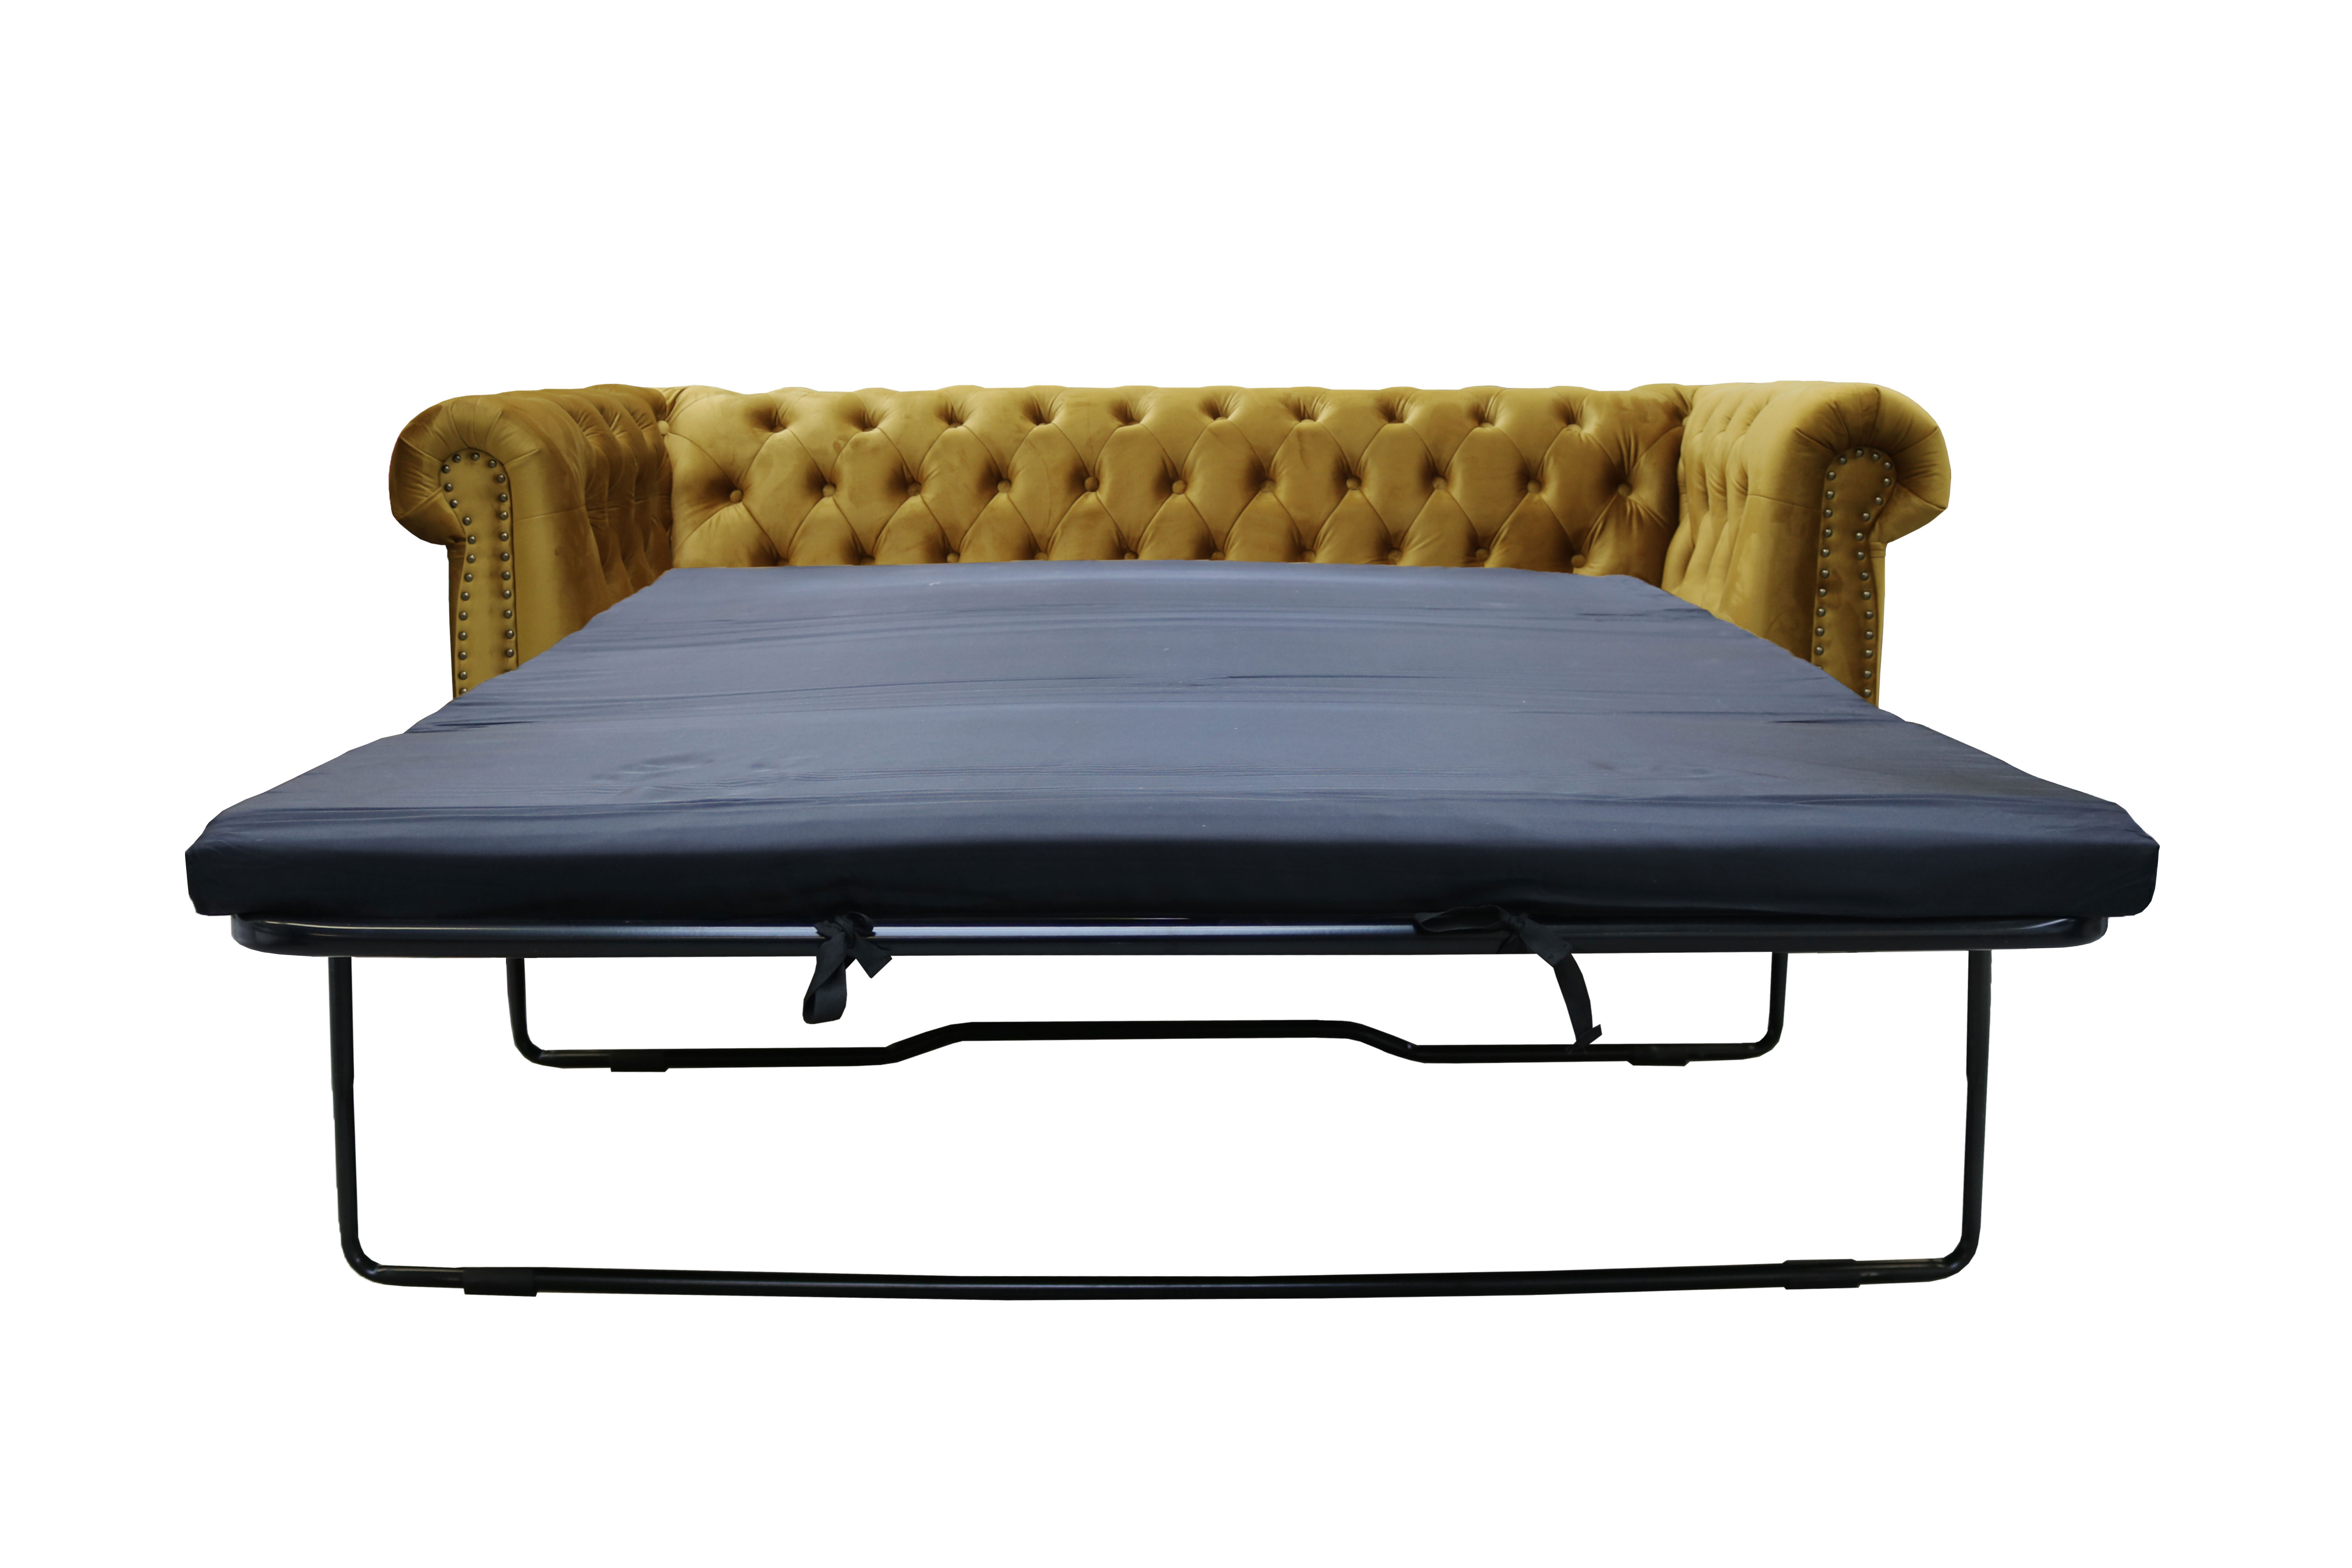 Chesterfield Sofa Und Hocker Chesterfield Sofa 3 43 2er Sitzer 43 Sessel 43 Hocker